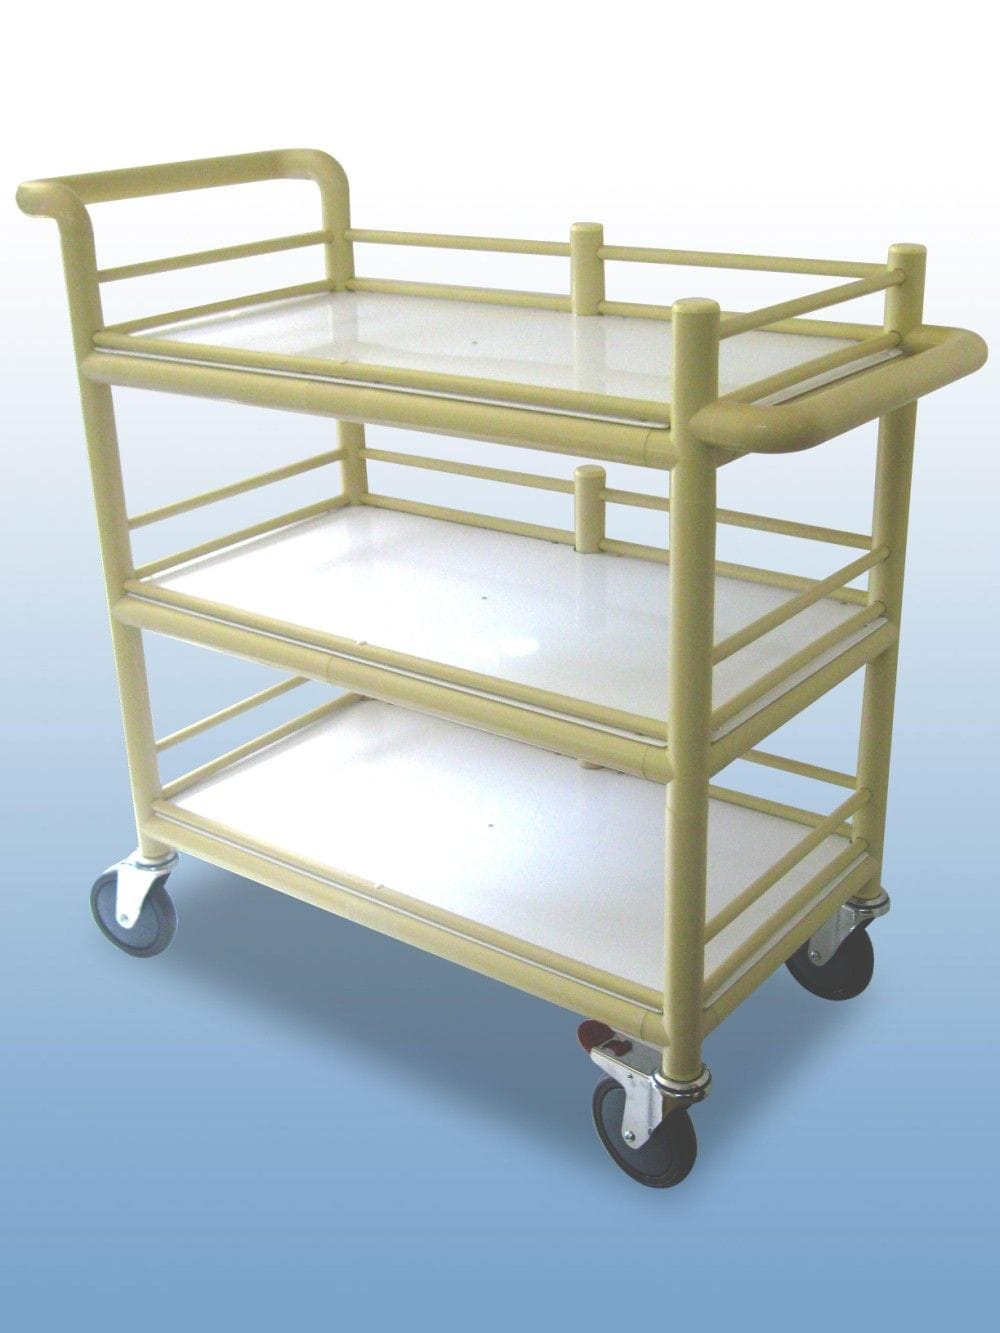 Water jug trolley